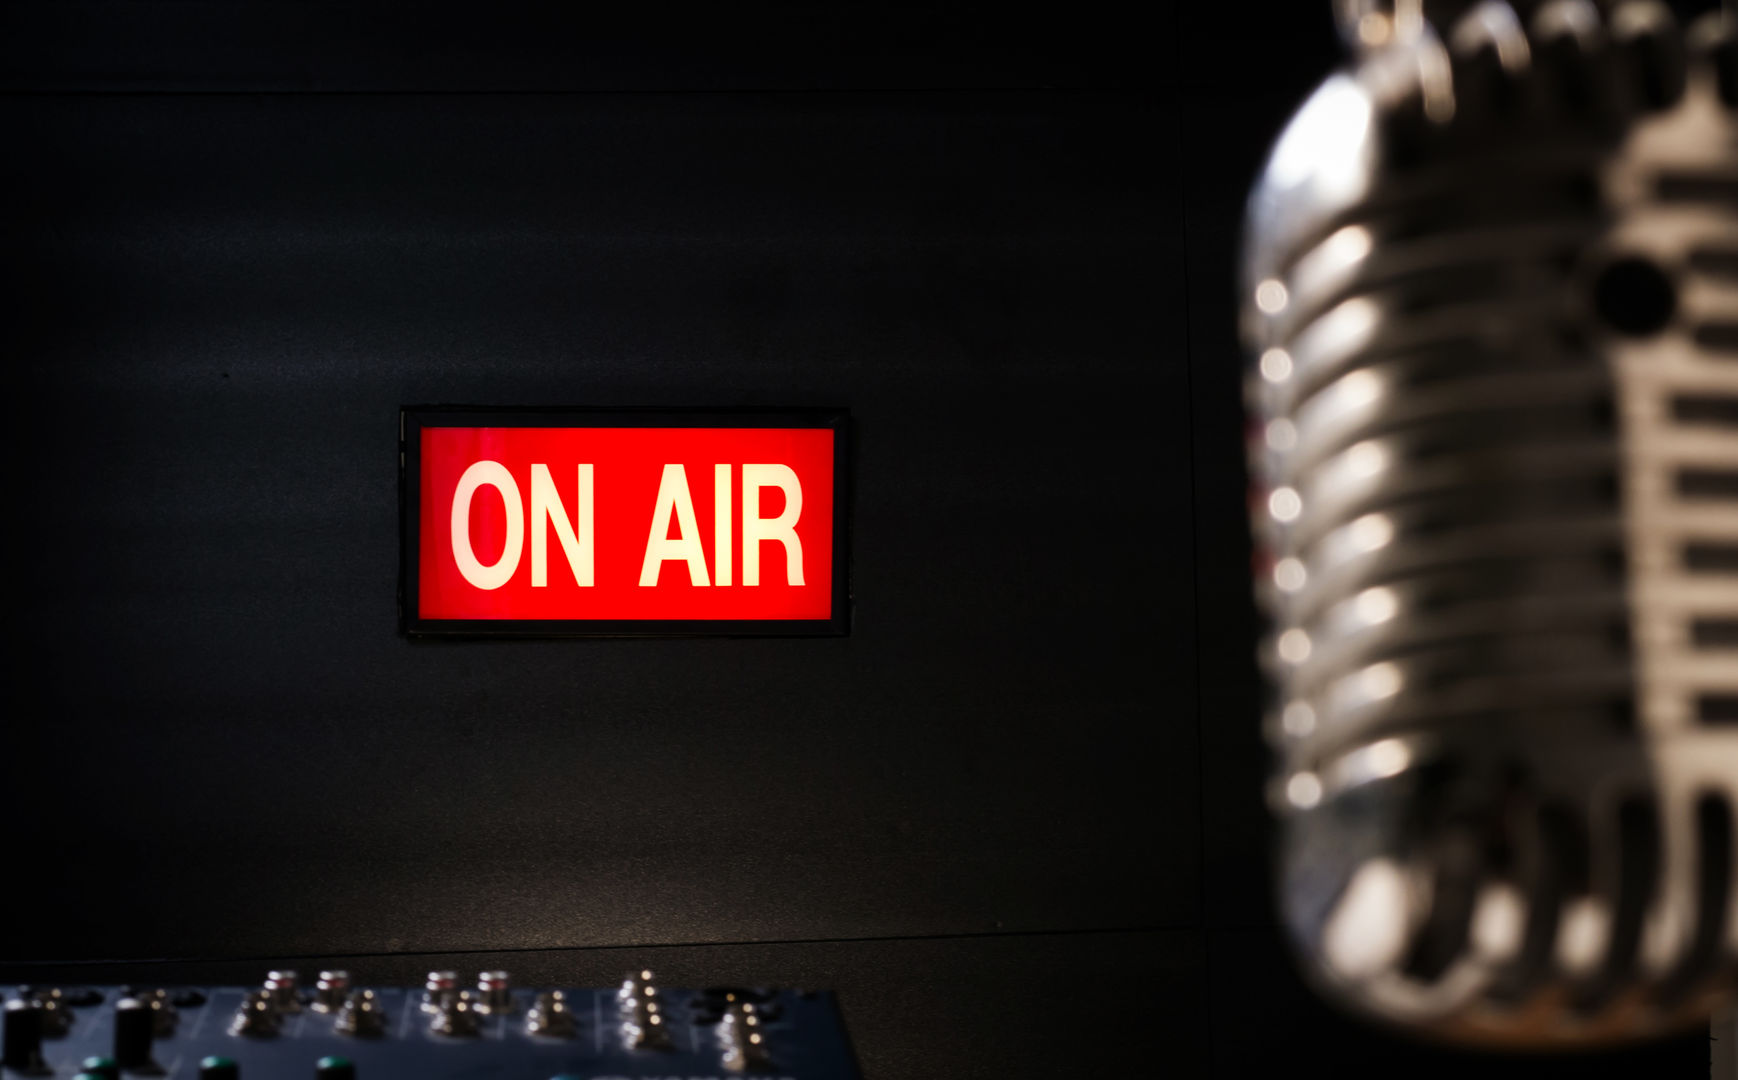 Voiceover on air